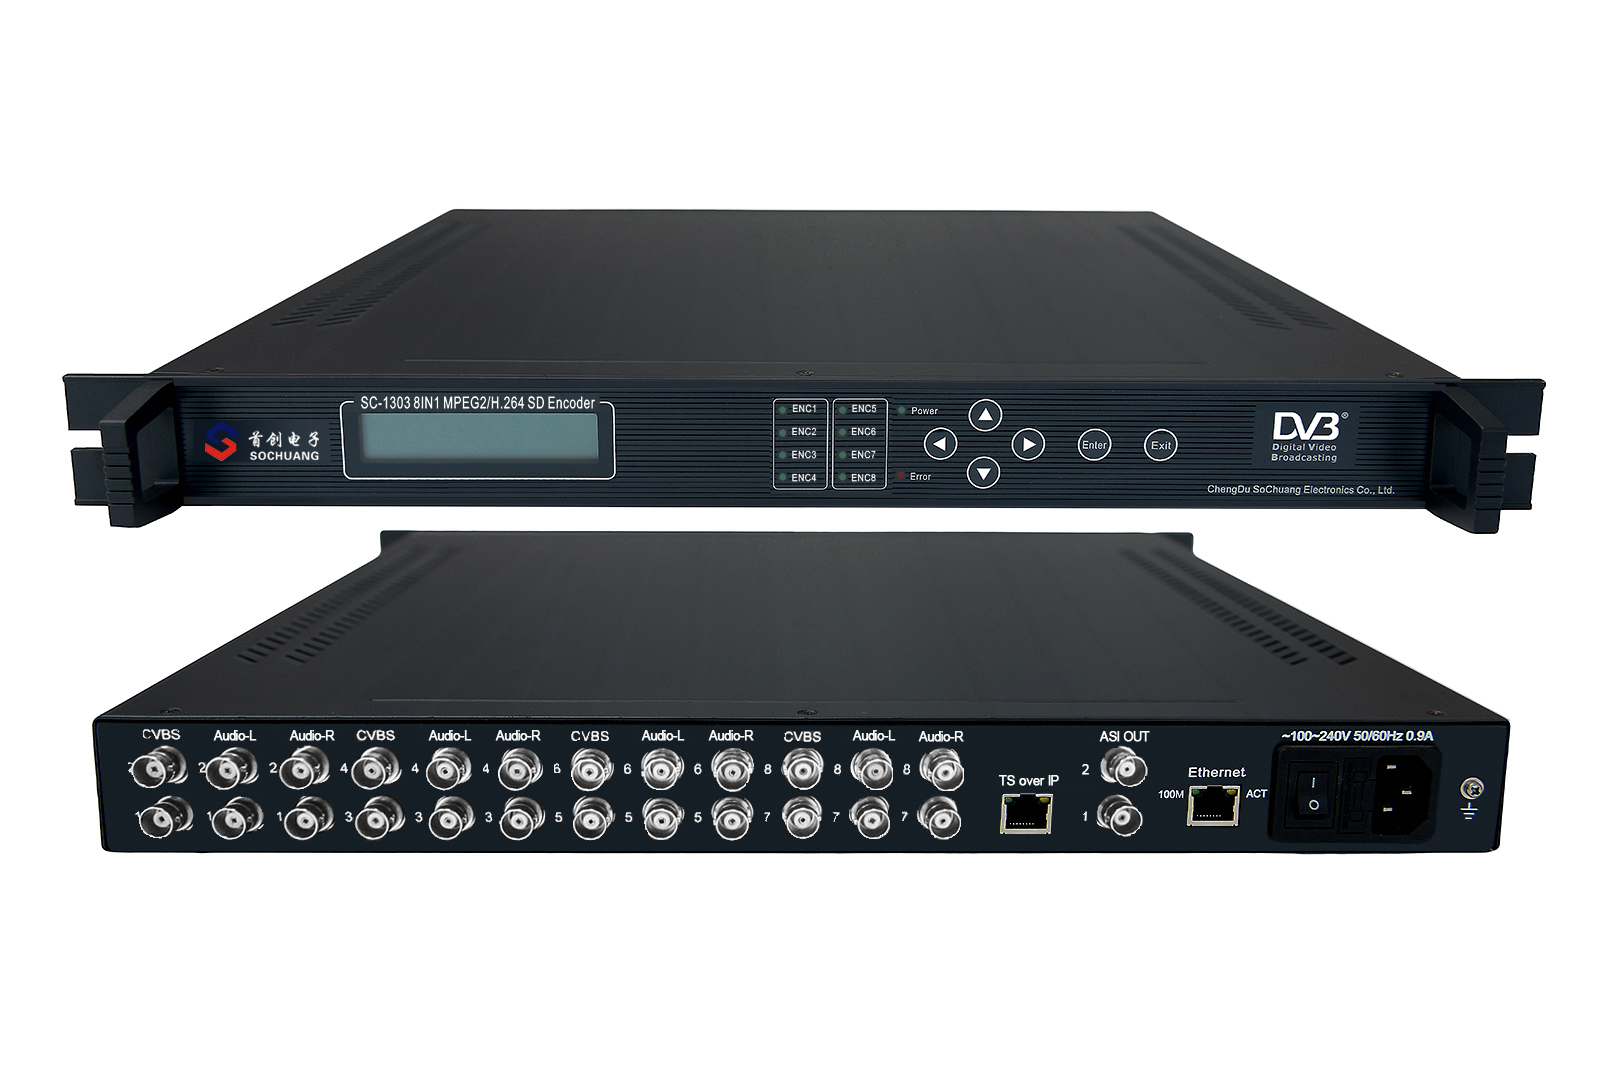 SC-1303 SD 8 Channel Low Bitrate MPEG2/H.264 Encoder